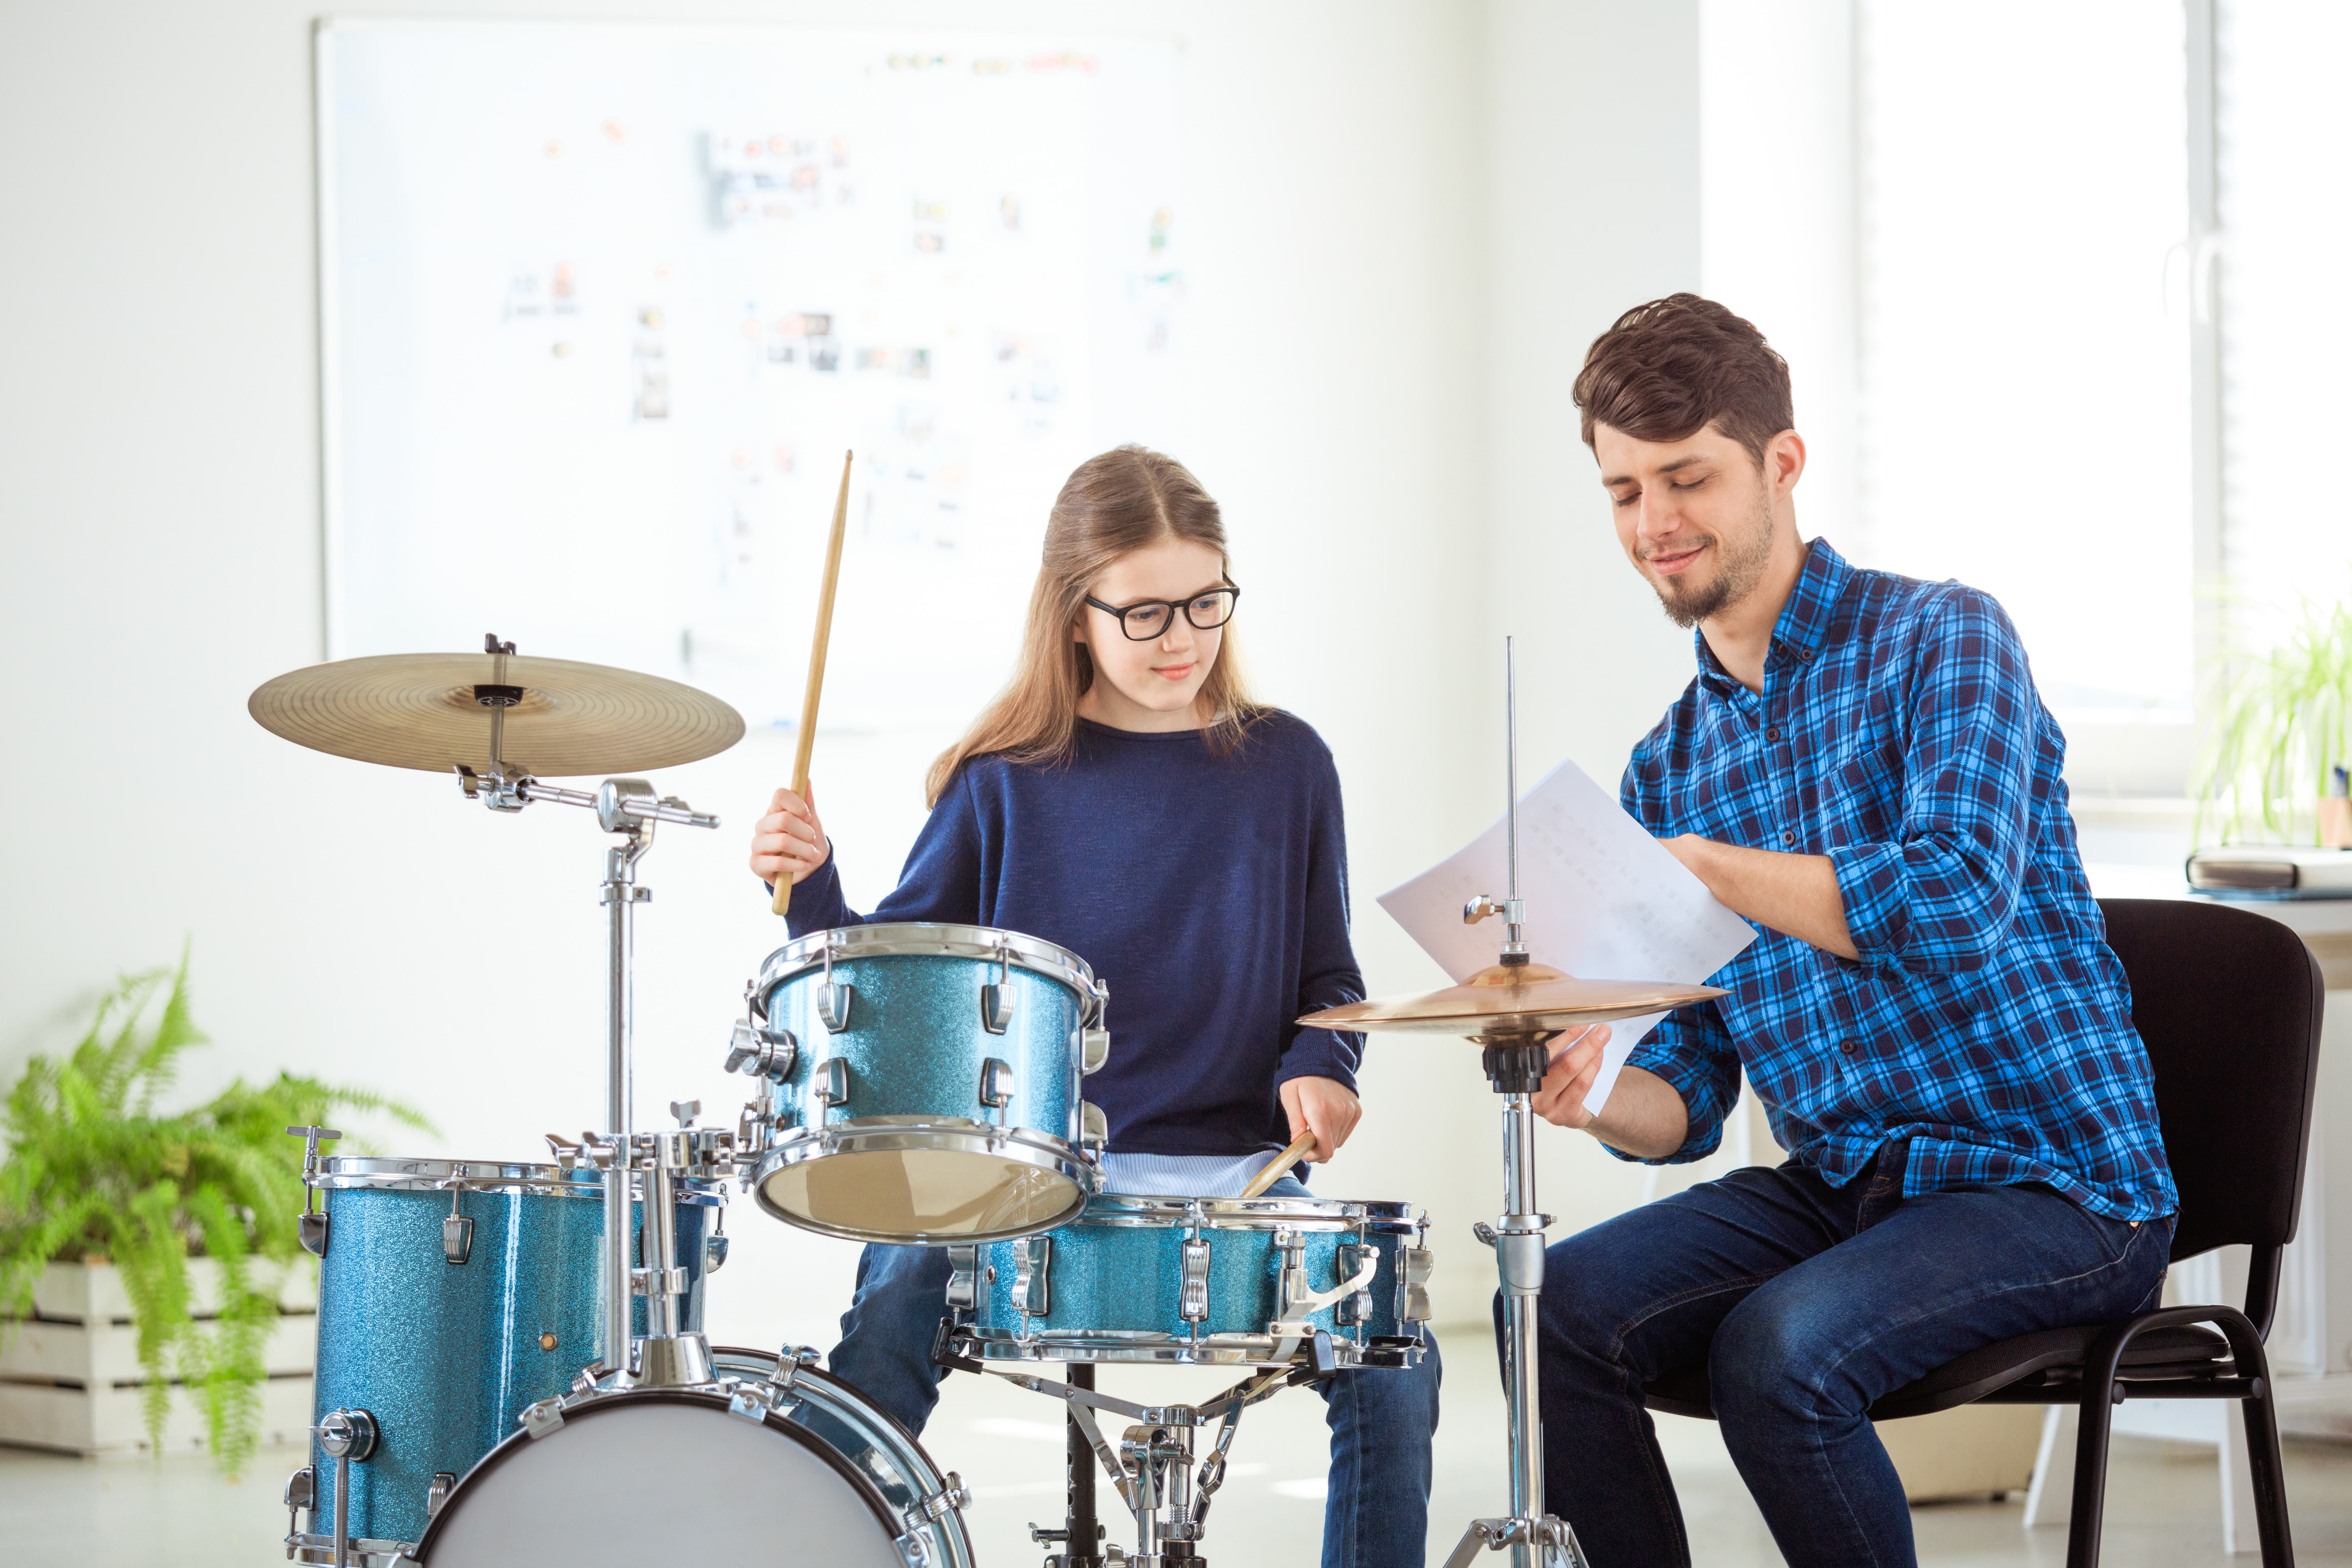 drum lessons near me for kids and adults in hendersonville nc